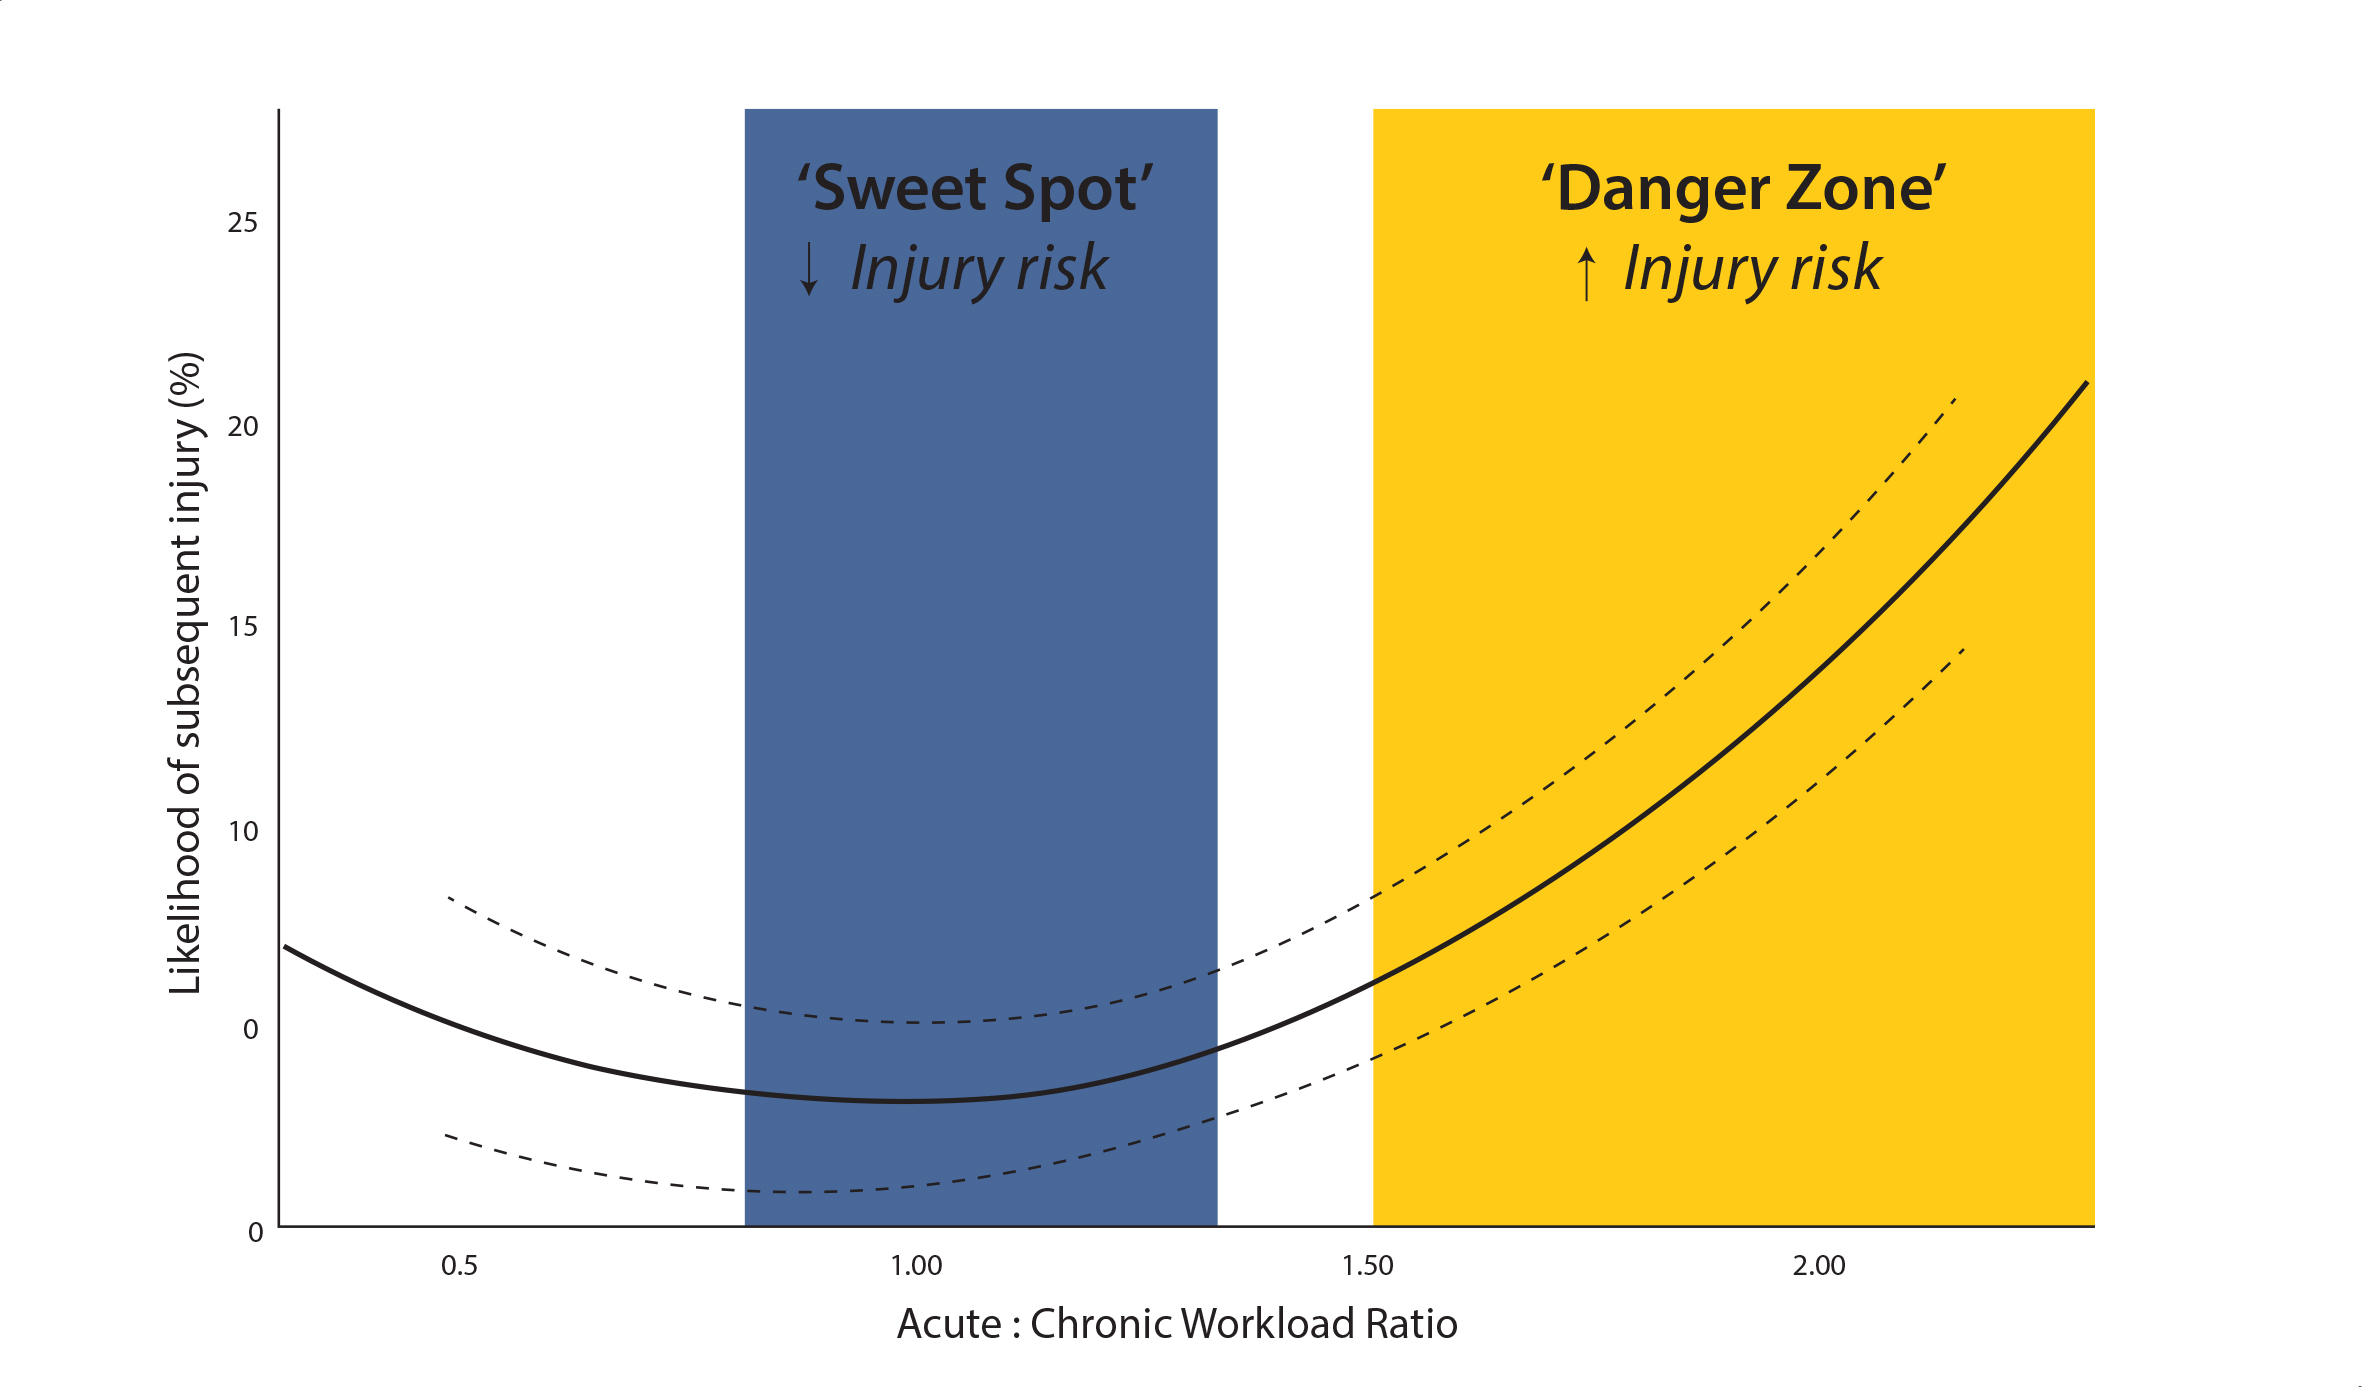 Figure 4. Injury risk zones according to player load ratios. The blue zone represents low injury risk, while the yellow zone depicts high risk. Model proposed by Blanch & Gabbett (2016).